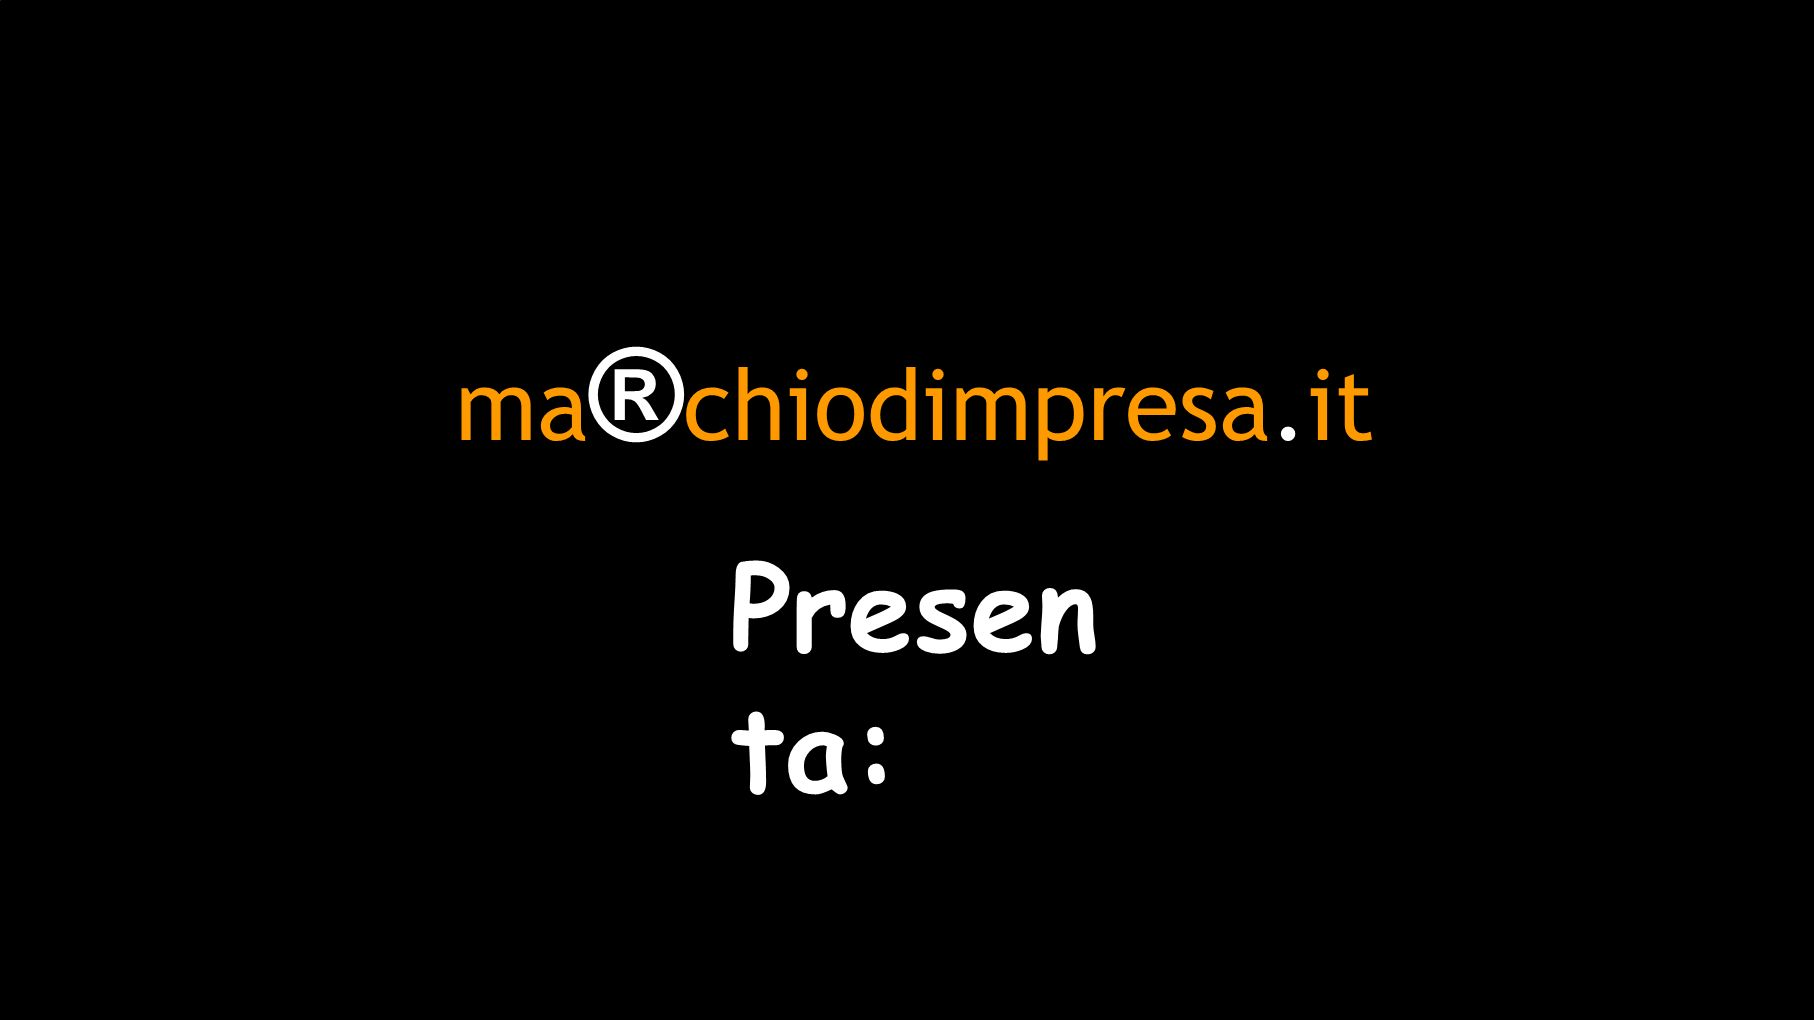 ma ® chiodimpresa.it Presen ta: